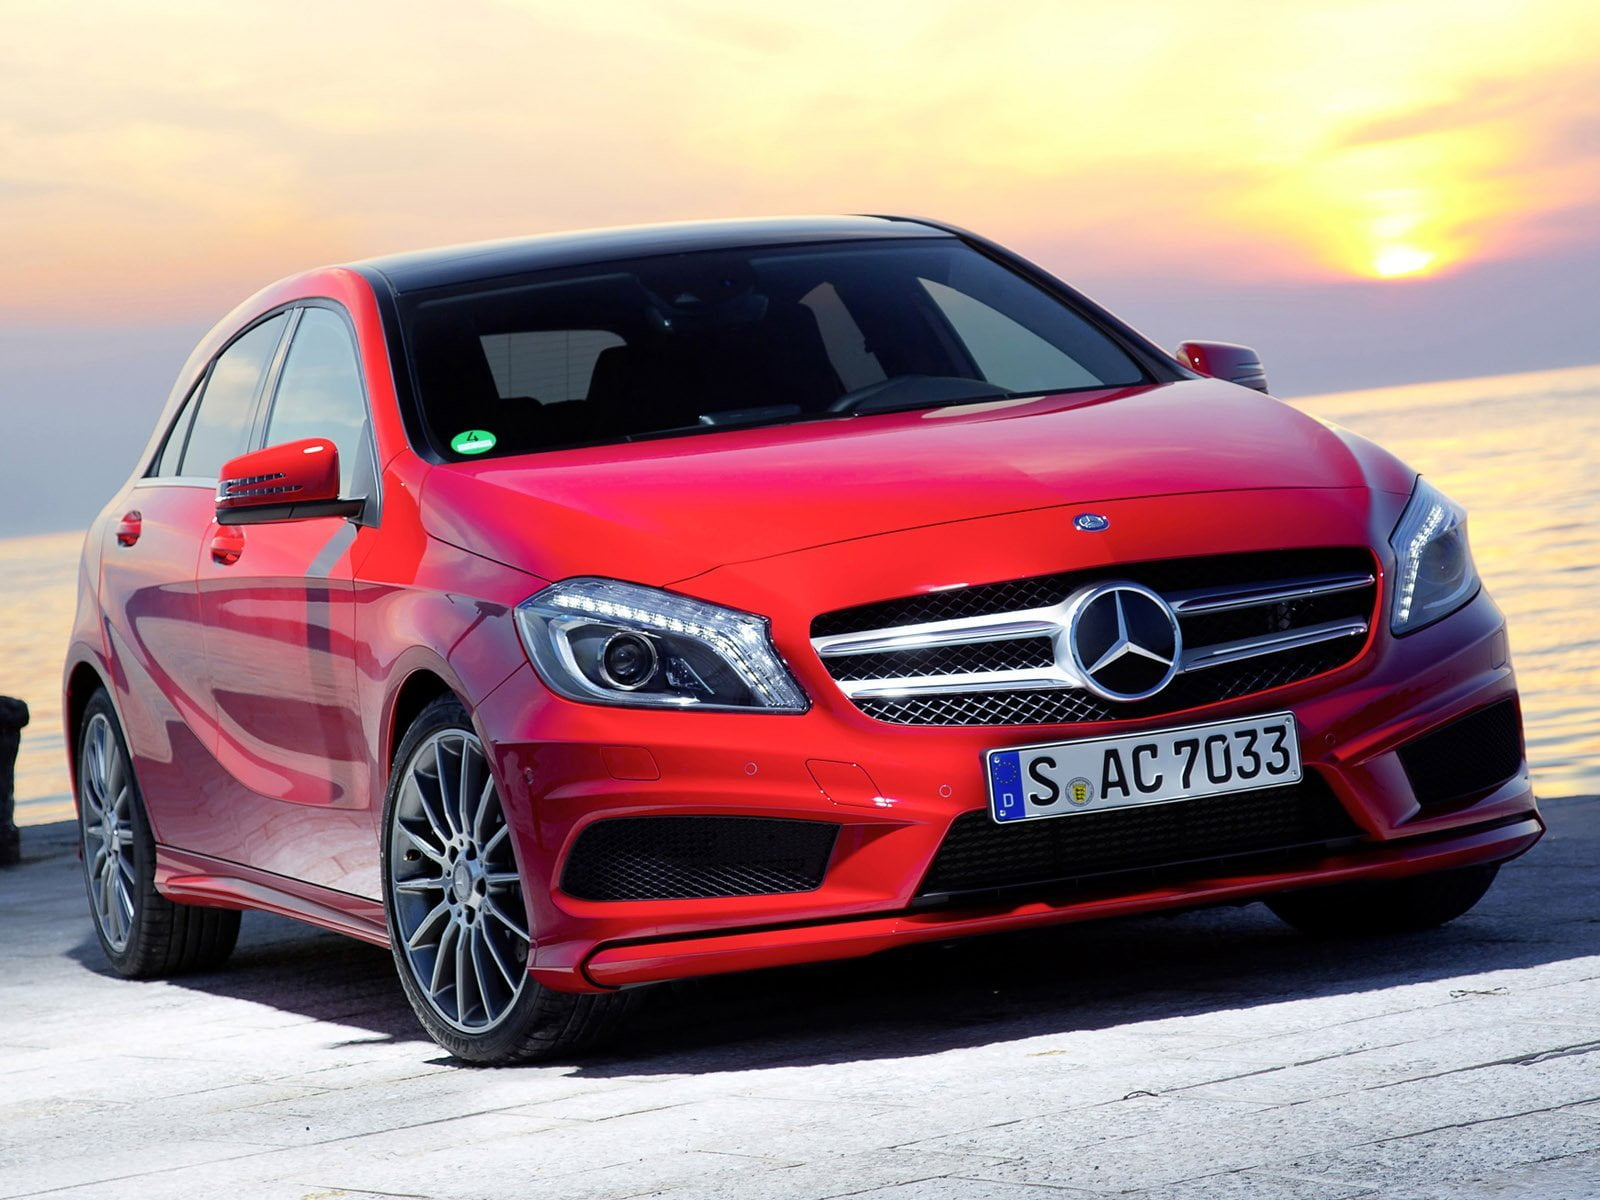 Portugal Cars Sales in Q3 2016